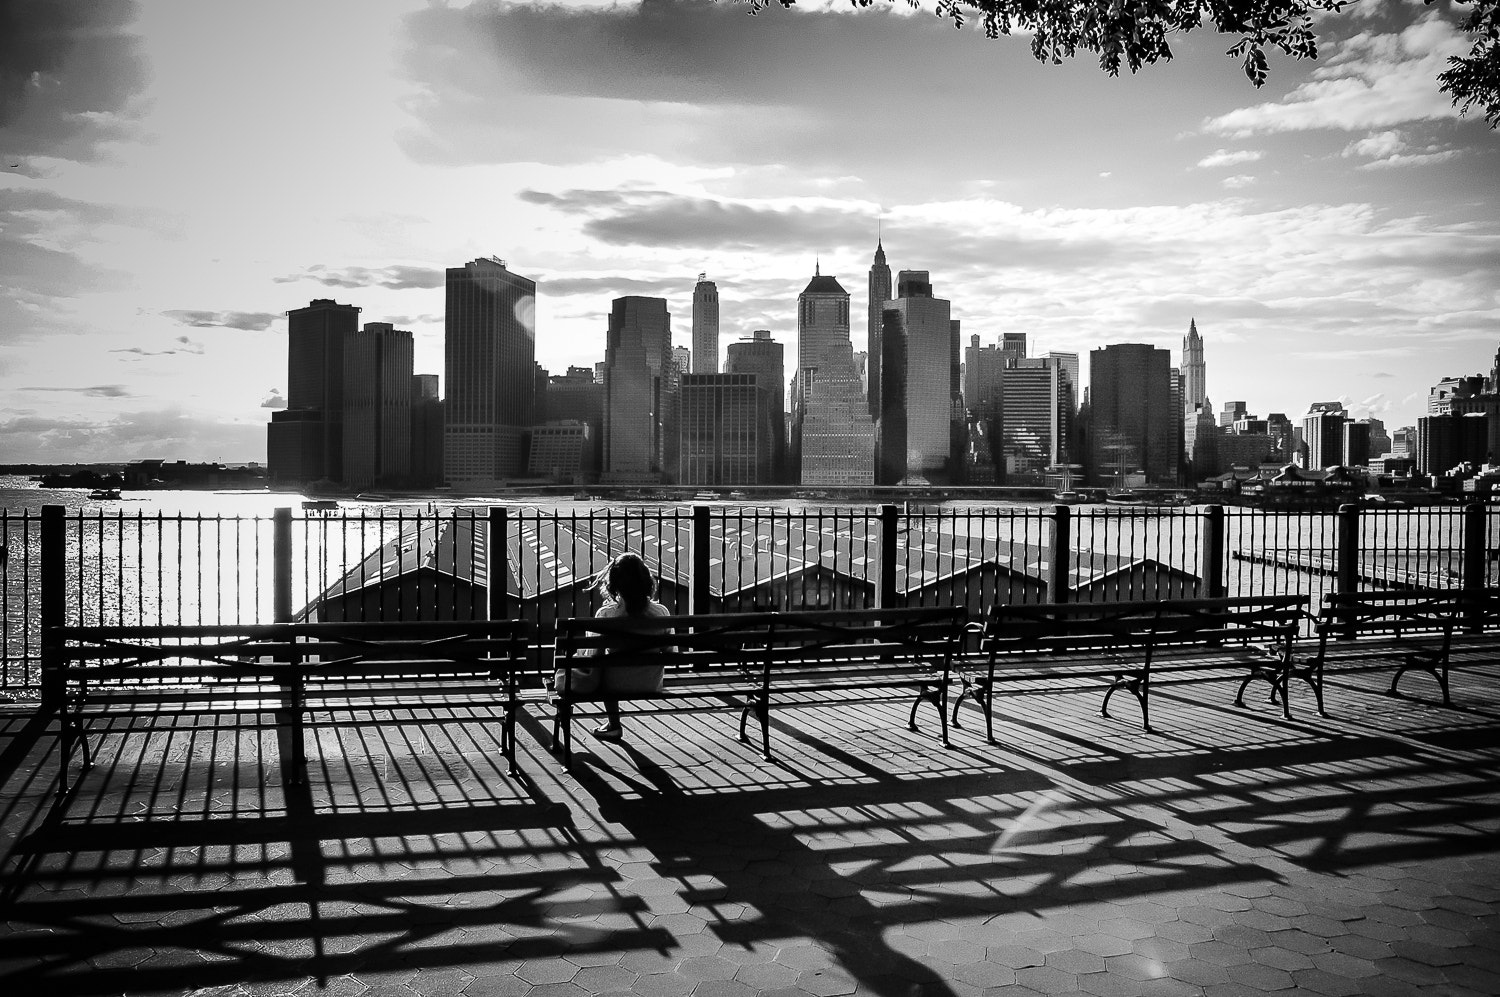 Photograph The girl on the bench, NY by Guillaume Gaudet on 500px